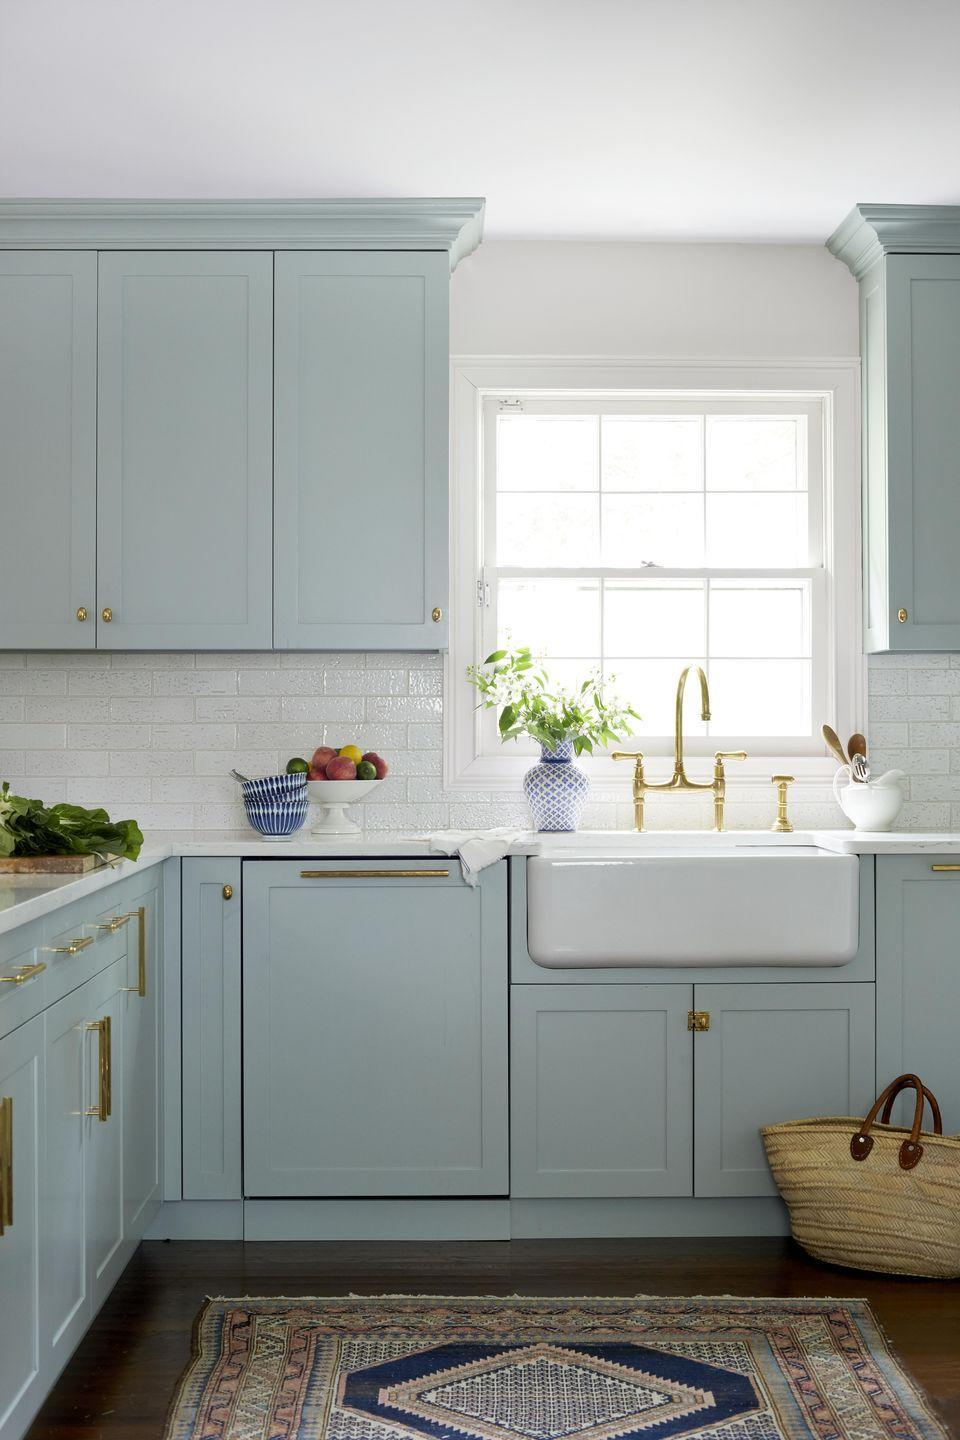 """<p>It's hard to deny the timeless appeal of classic, Shaker-style cabinetry. Simple in its construction yet refined in its precision, a Shaker cabinet works with a wide array of achitectural and decorative styles. <em>Today</em> cohost Jenna Bush Hager overhauled the midcentury kitchen in her <a href=""""https://www.veranda.com/home-decorators/a29416525/jenna-bush-hager-home-tour/"""" rel=""""nofollow noopener"""" target=""""_blank"""" data-ylk=""""slk:spirited Long Island cottage"""" class=""""link rapid-noclick-resp"""">spirited Long Island cottage</a> with pastel blue cabinetry (<a href=""""https://www.benjaminmoore.com/en-us/color-overview/find-your-color/color/hc-146/wedgewood-gray?color=HC-146"""" rel=""""nofollow noopener"""" target=""""_blank"""" data-ylk=""""slk:Wedgewood Gray by Benjamin Moore"""" class=""""link rapid-noclick-resp"""">Wedgewood Gray by Benjamin Moore</a>) that pops against a fireclay apron-front sink (<a href=""""https://www.rohlhome.com/"""" rel=""""nofollow noopener"""" target=""""_blank"""" data-ylk=""""slk:Rohl"""" class=""""link rapid-noclick-resp"""">Rohl</a>) and glazed wall tiles (<a href=""""https://www.waterworks.com/us_en/"""" rel=""""nofollow noopener"""" target=""""_blank"""" data-ylk=""""slk:Waterworks"""" class=""""link rapid-noclick-resp"""">Waterworks</a>). </p>"""